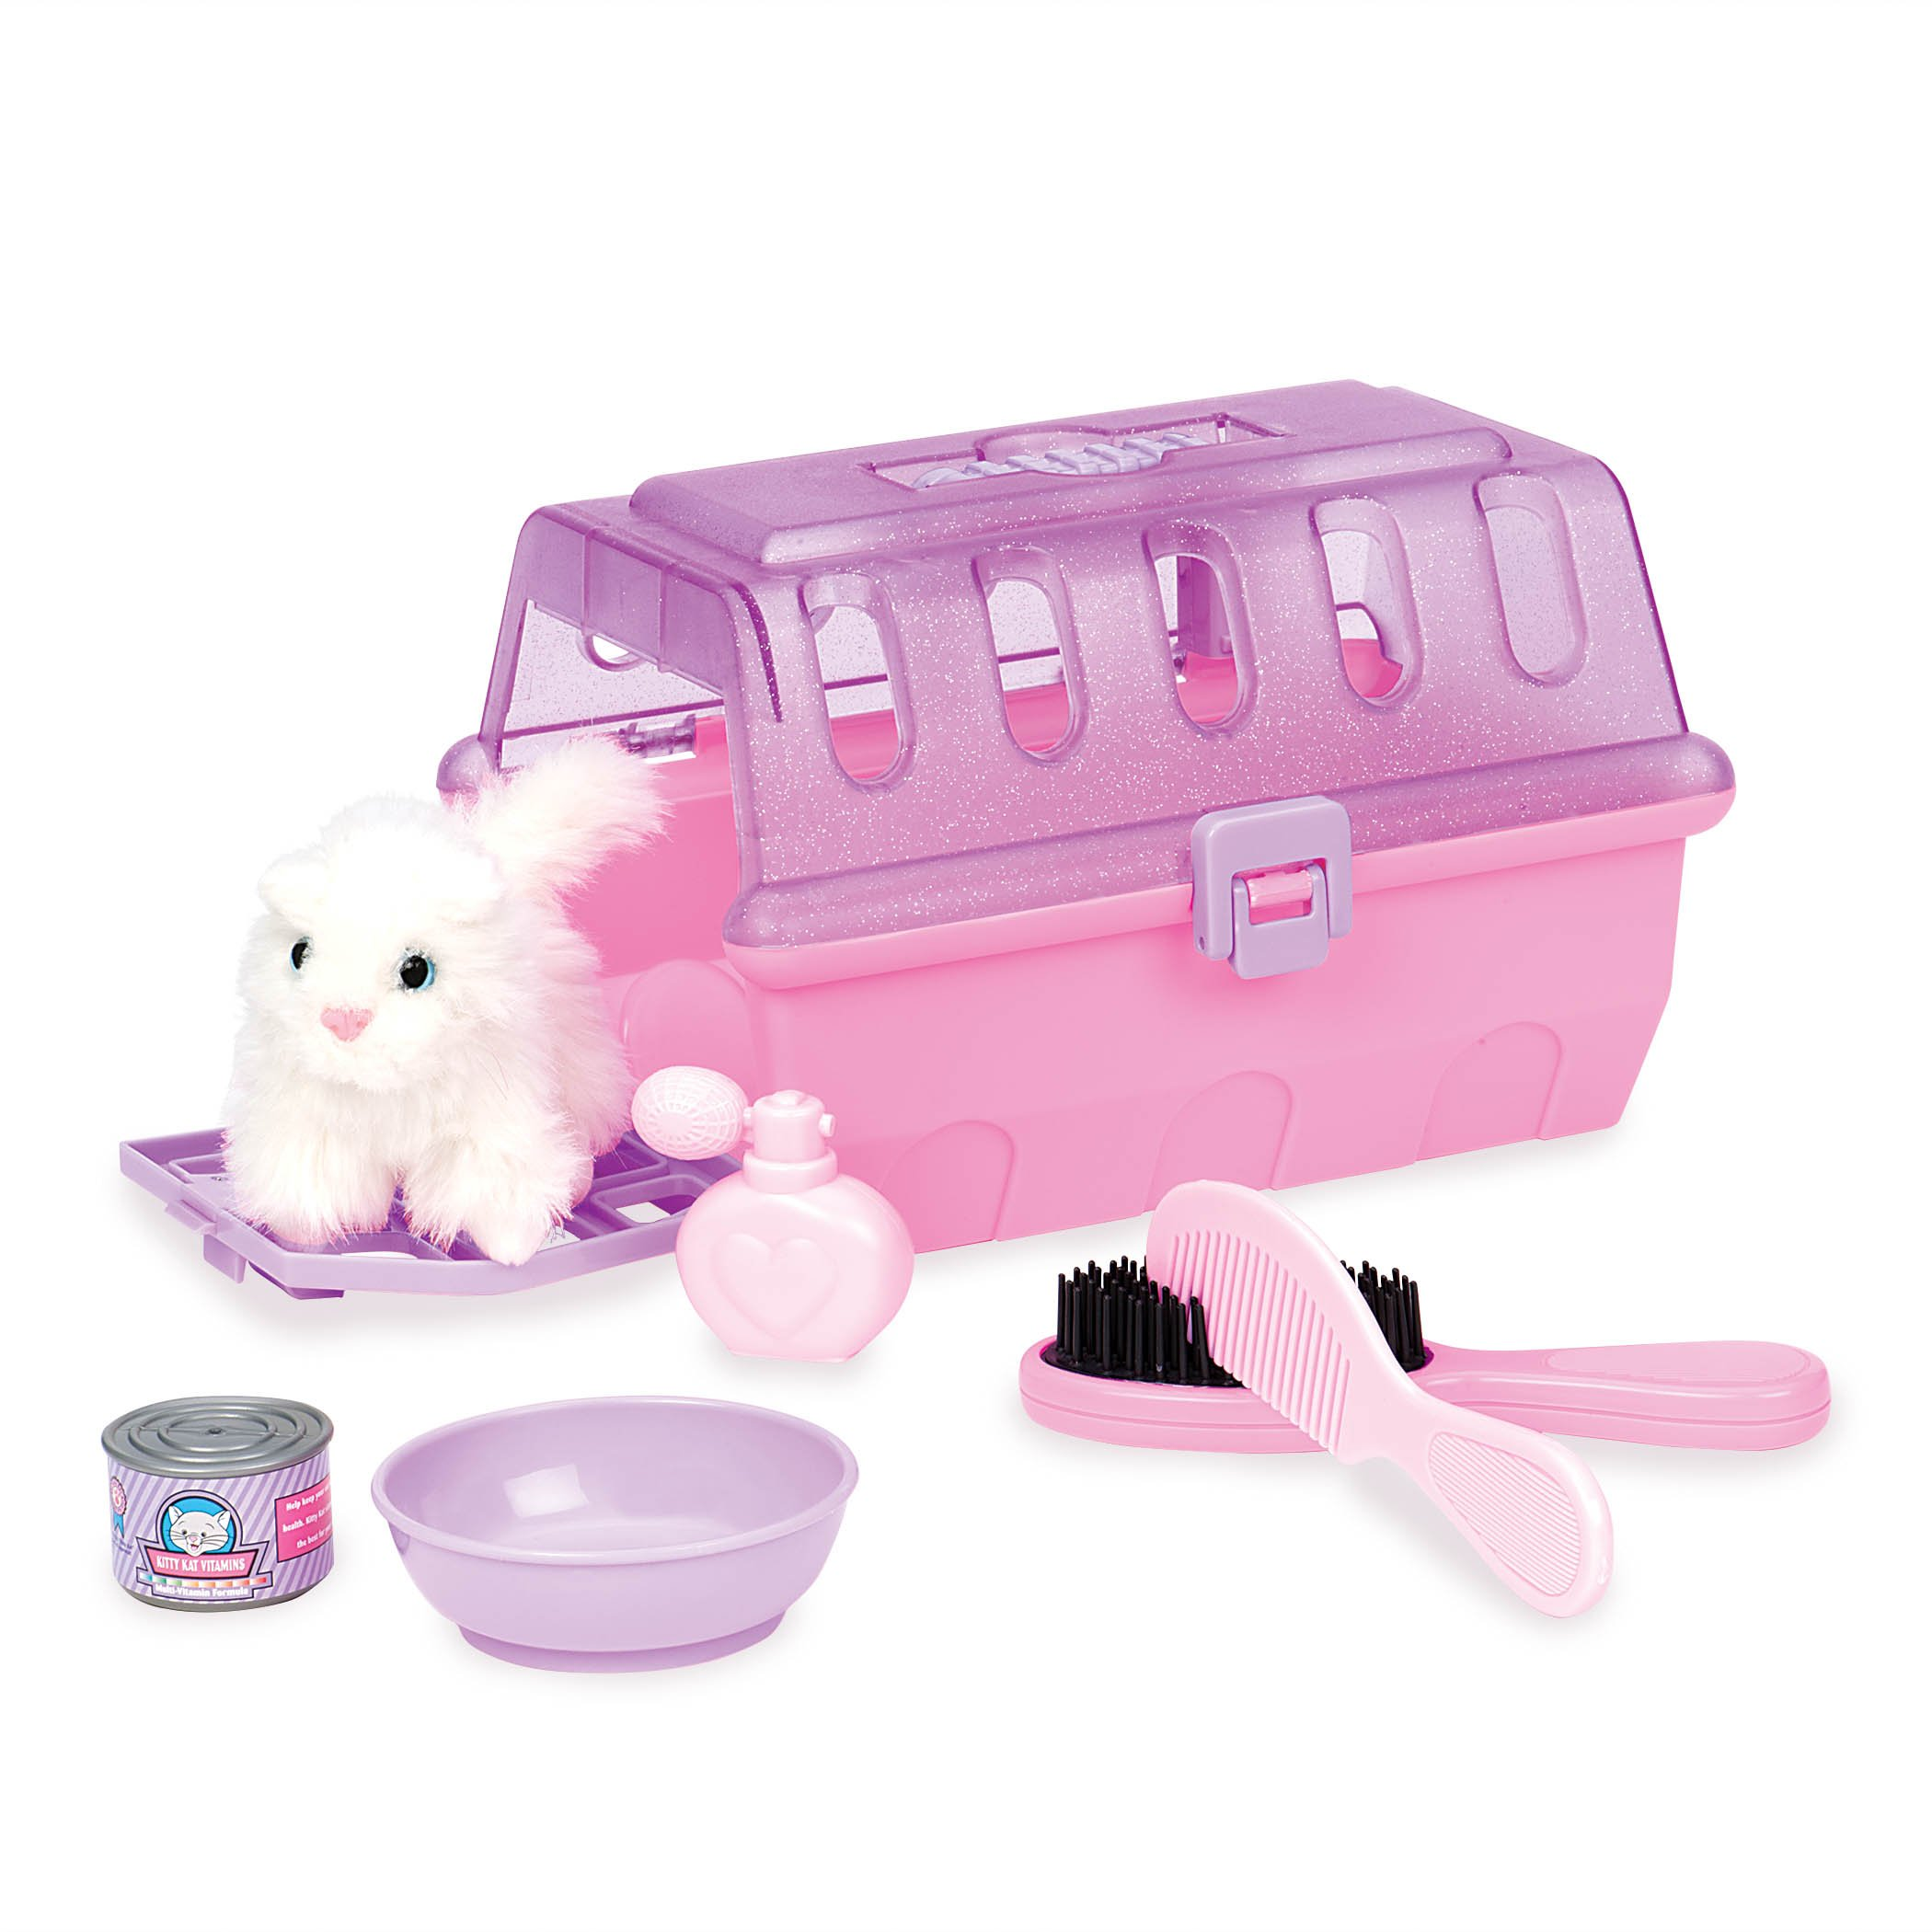 Play Circle by Battat – Pink Cat Grooming Kit – Pretend Play Cat Carrier with Plush Kitten, Brush, Toy Food, and Accessories – Pet Vet Care Set for Kids Ages 2 and Up (7 Pieces)